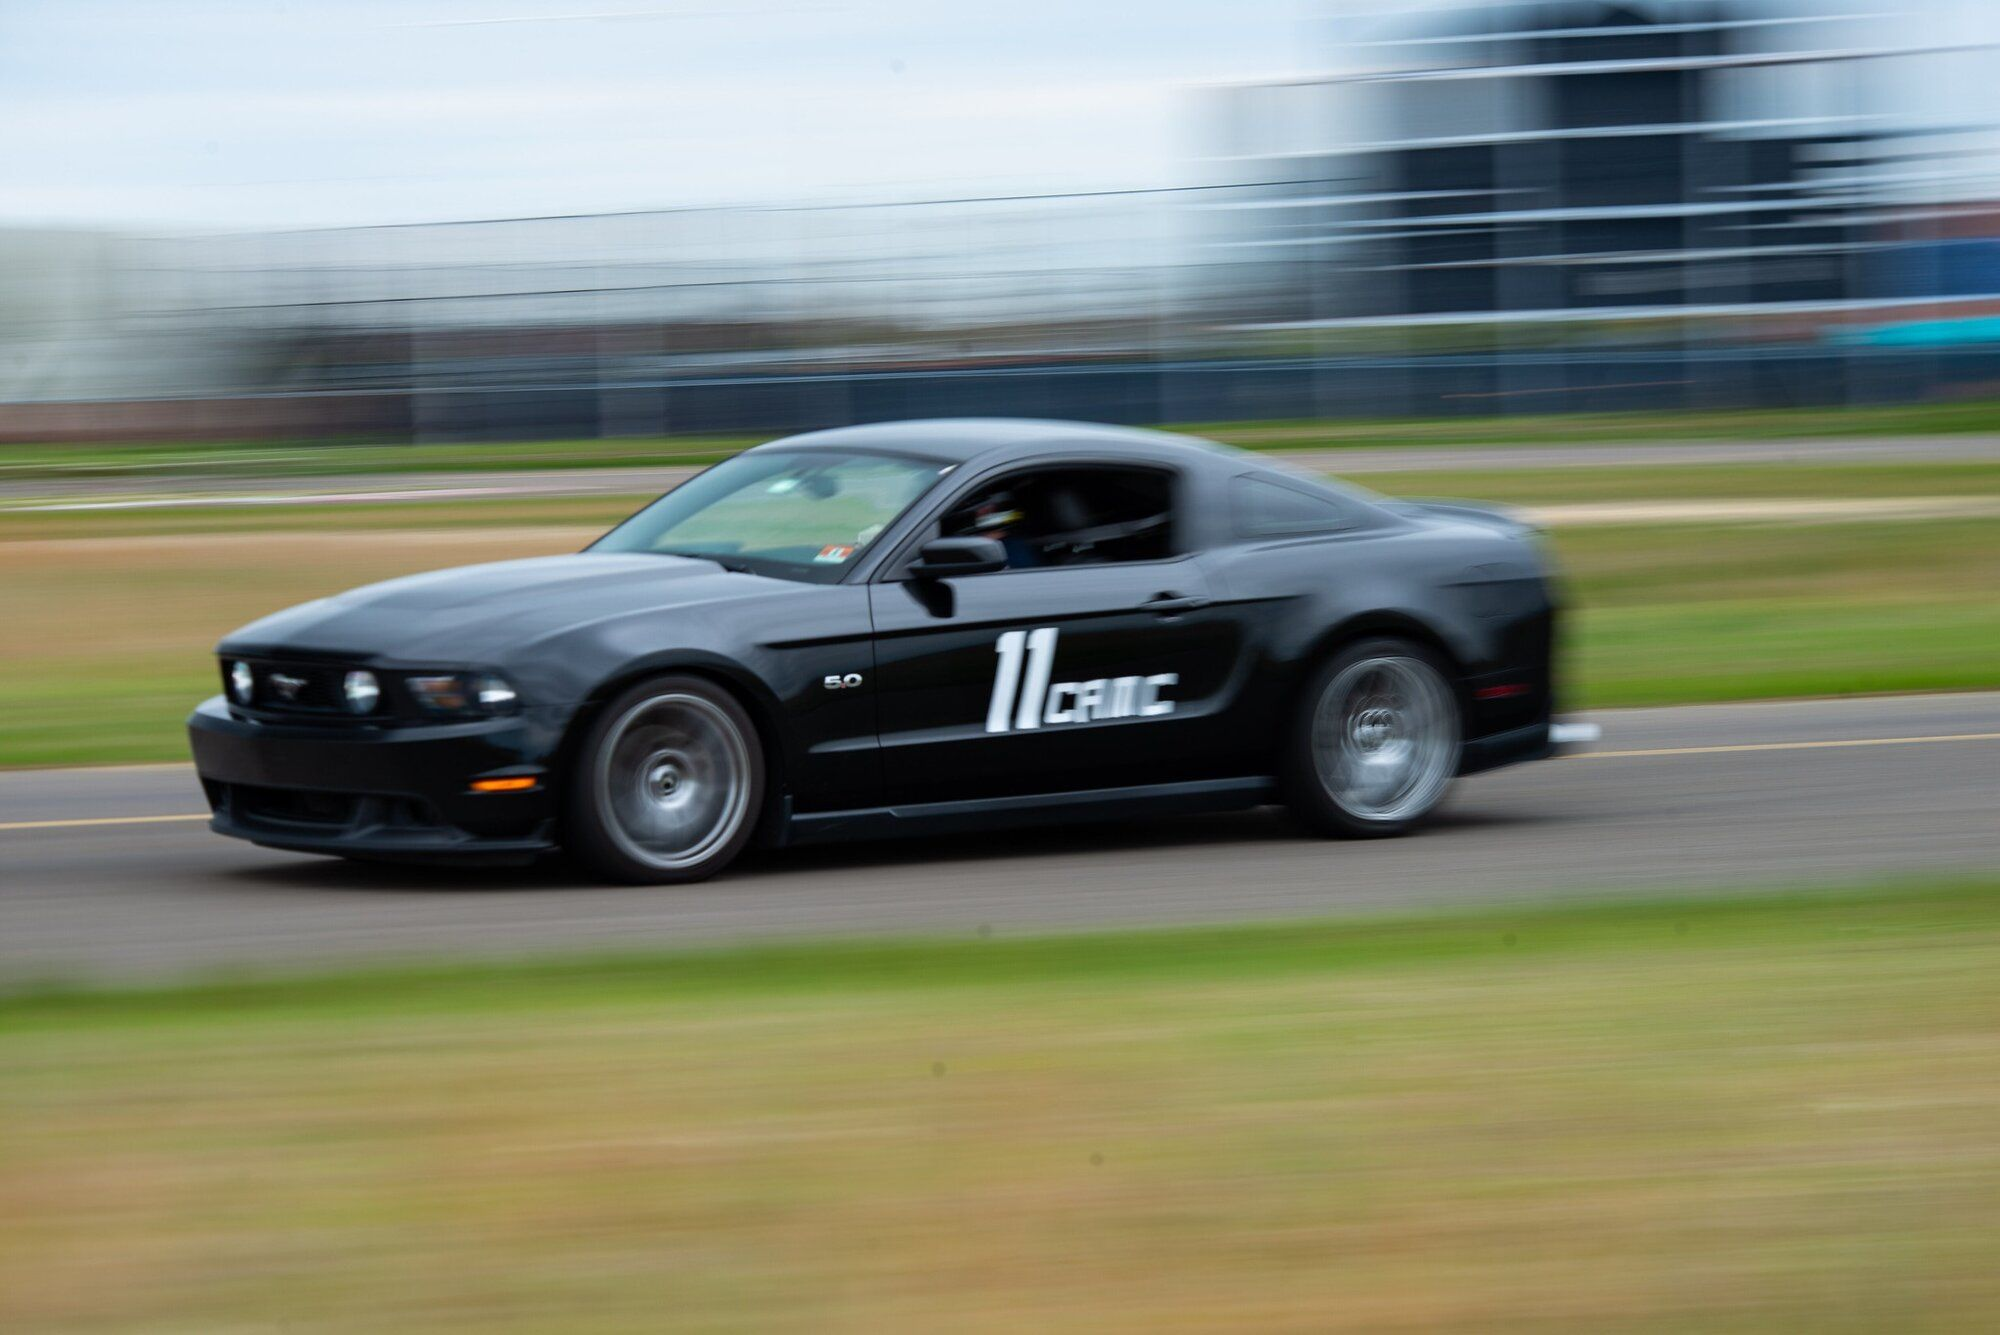 Nick's 2011 Mustang GT Vehicle Profile - S197 Mustangs